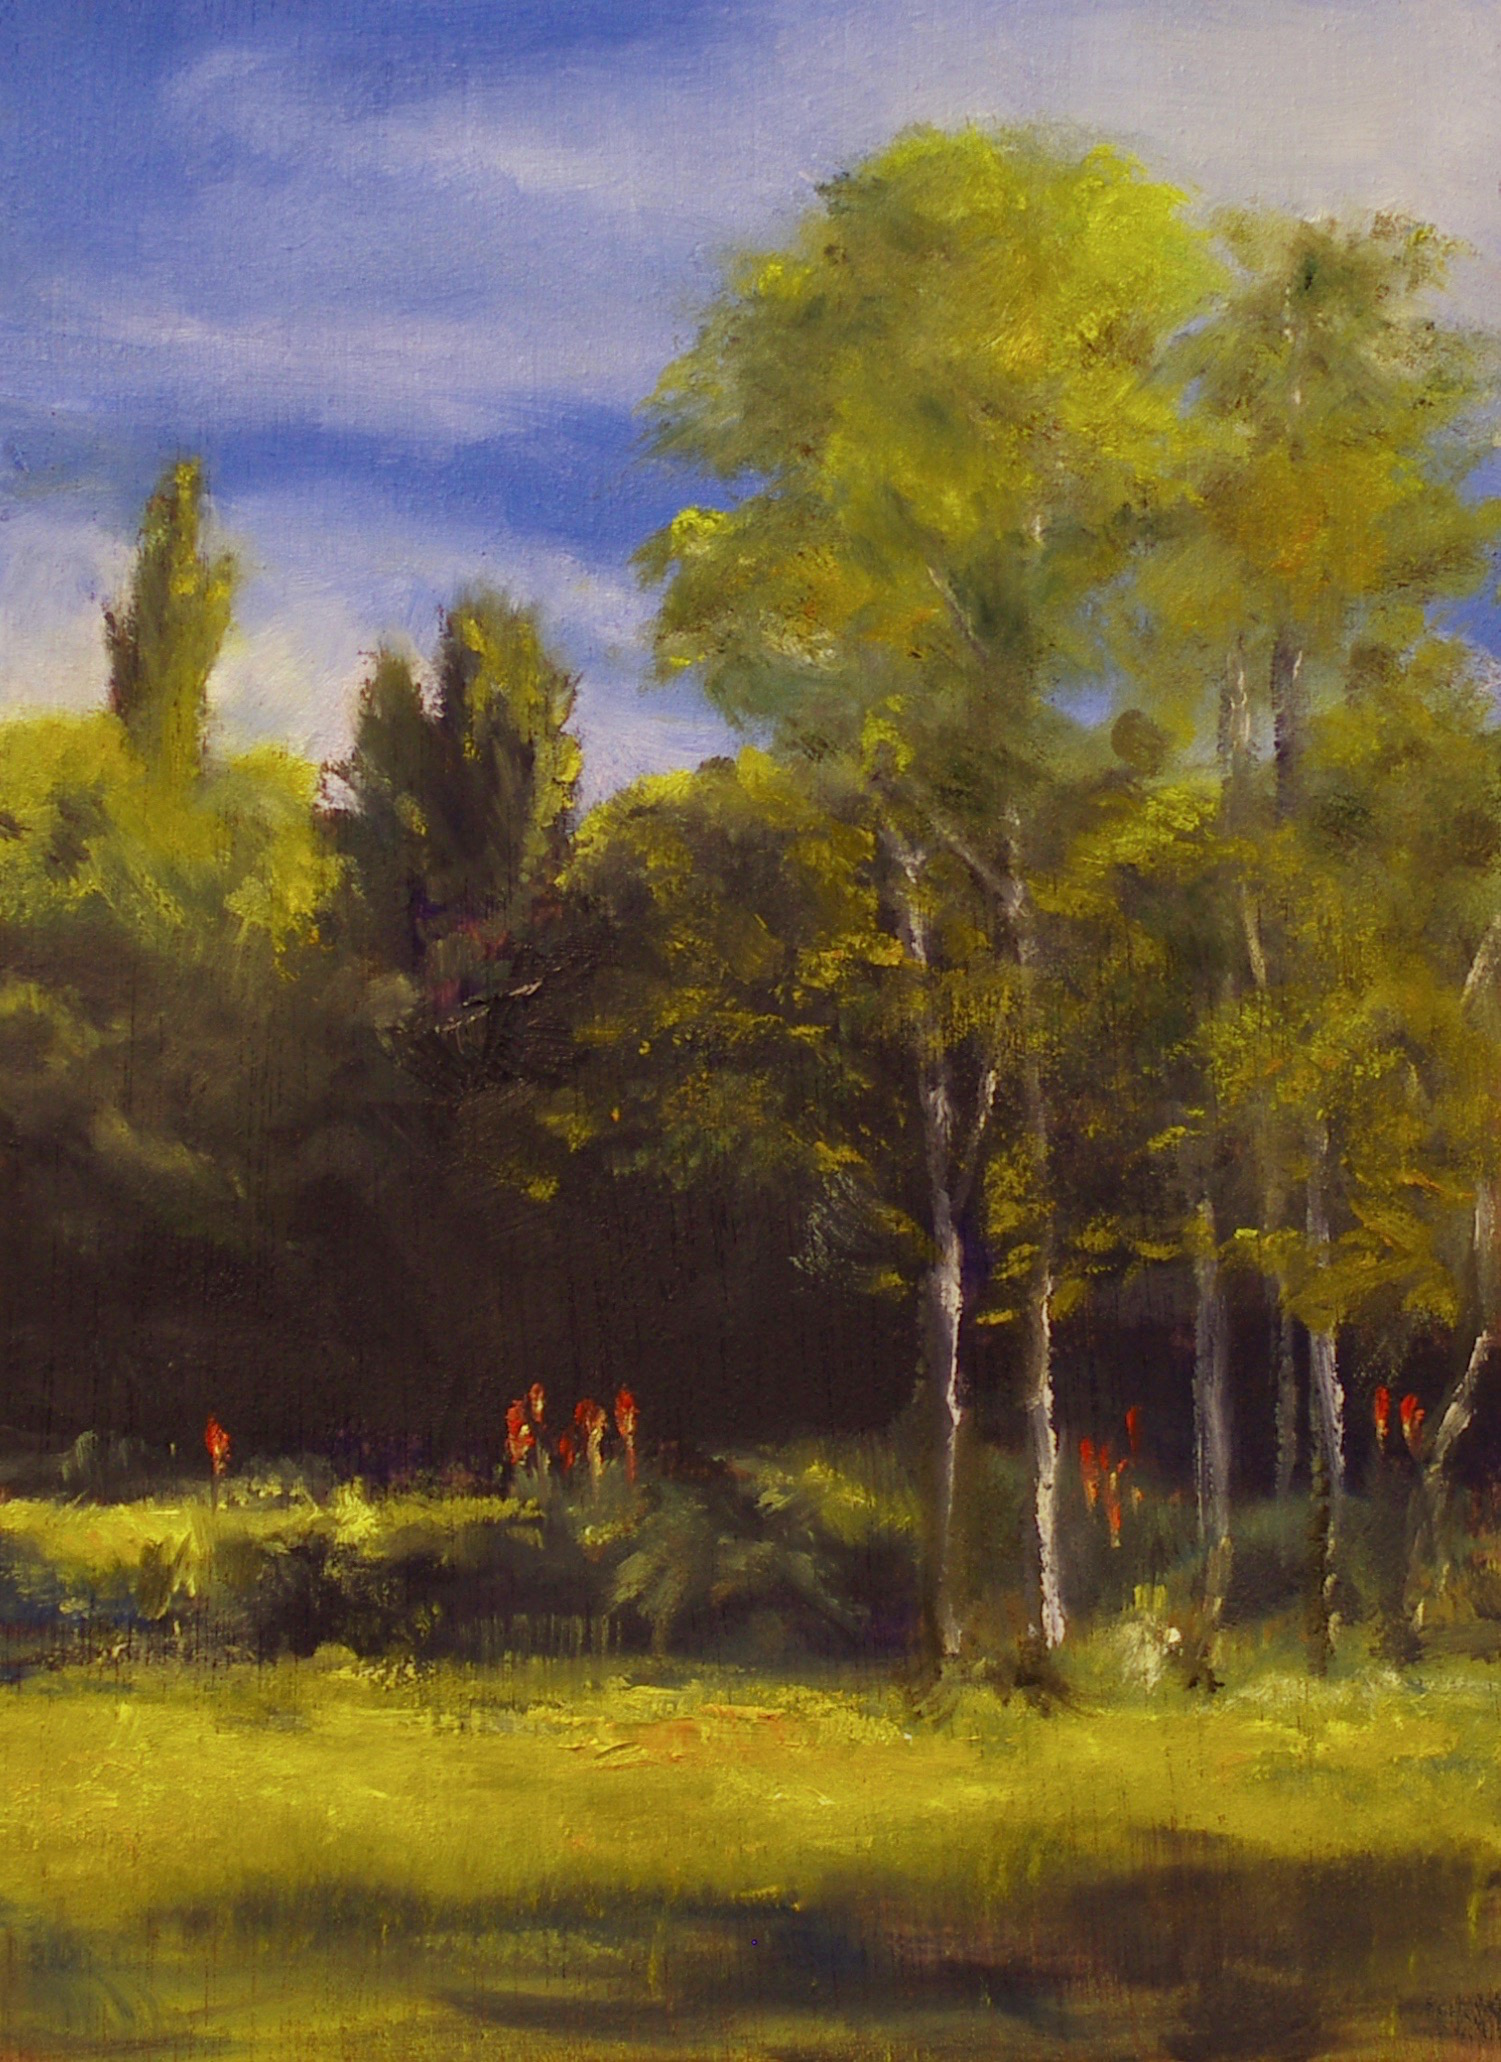 Moerere field, trees, poplars, red hot pokers, oil painting